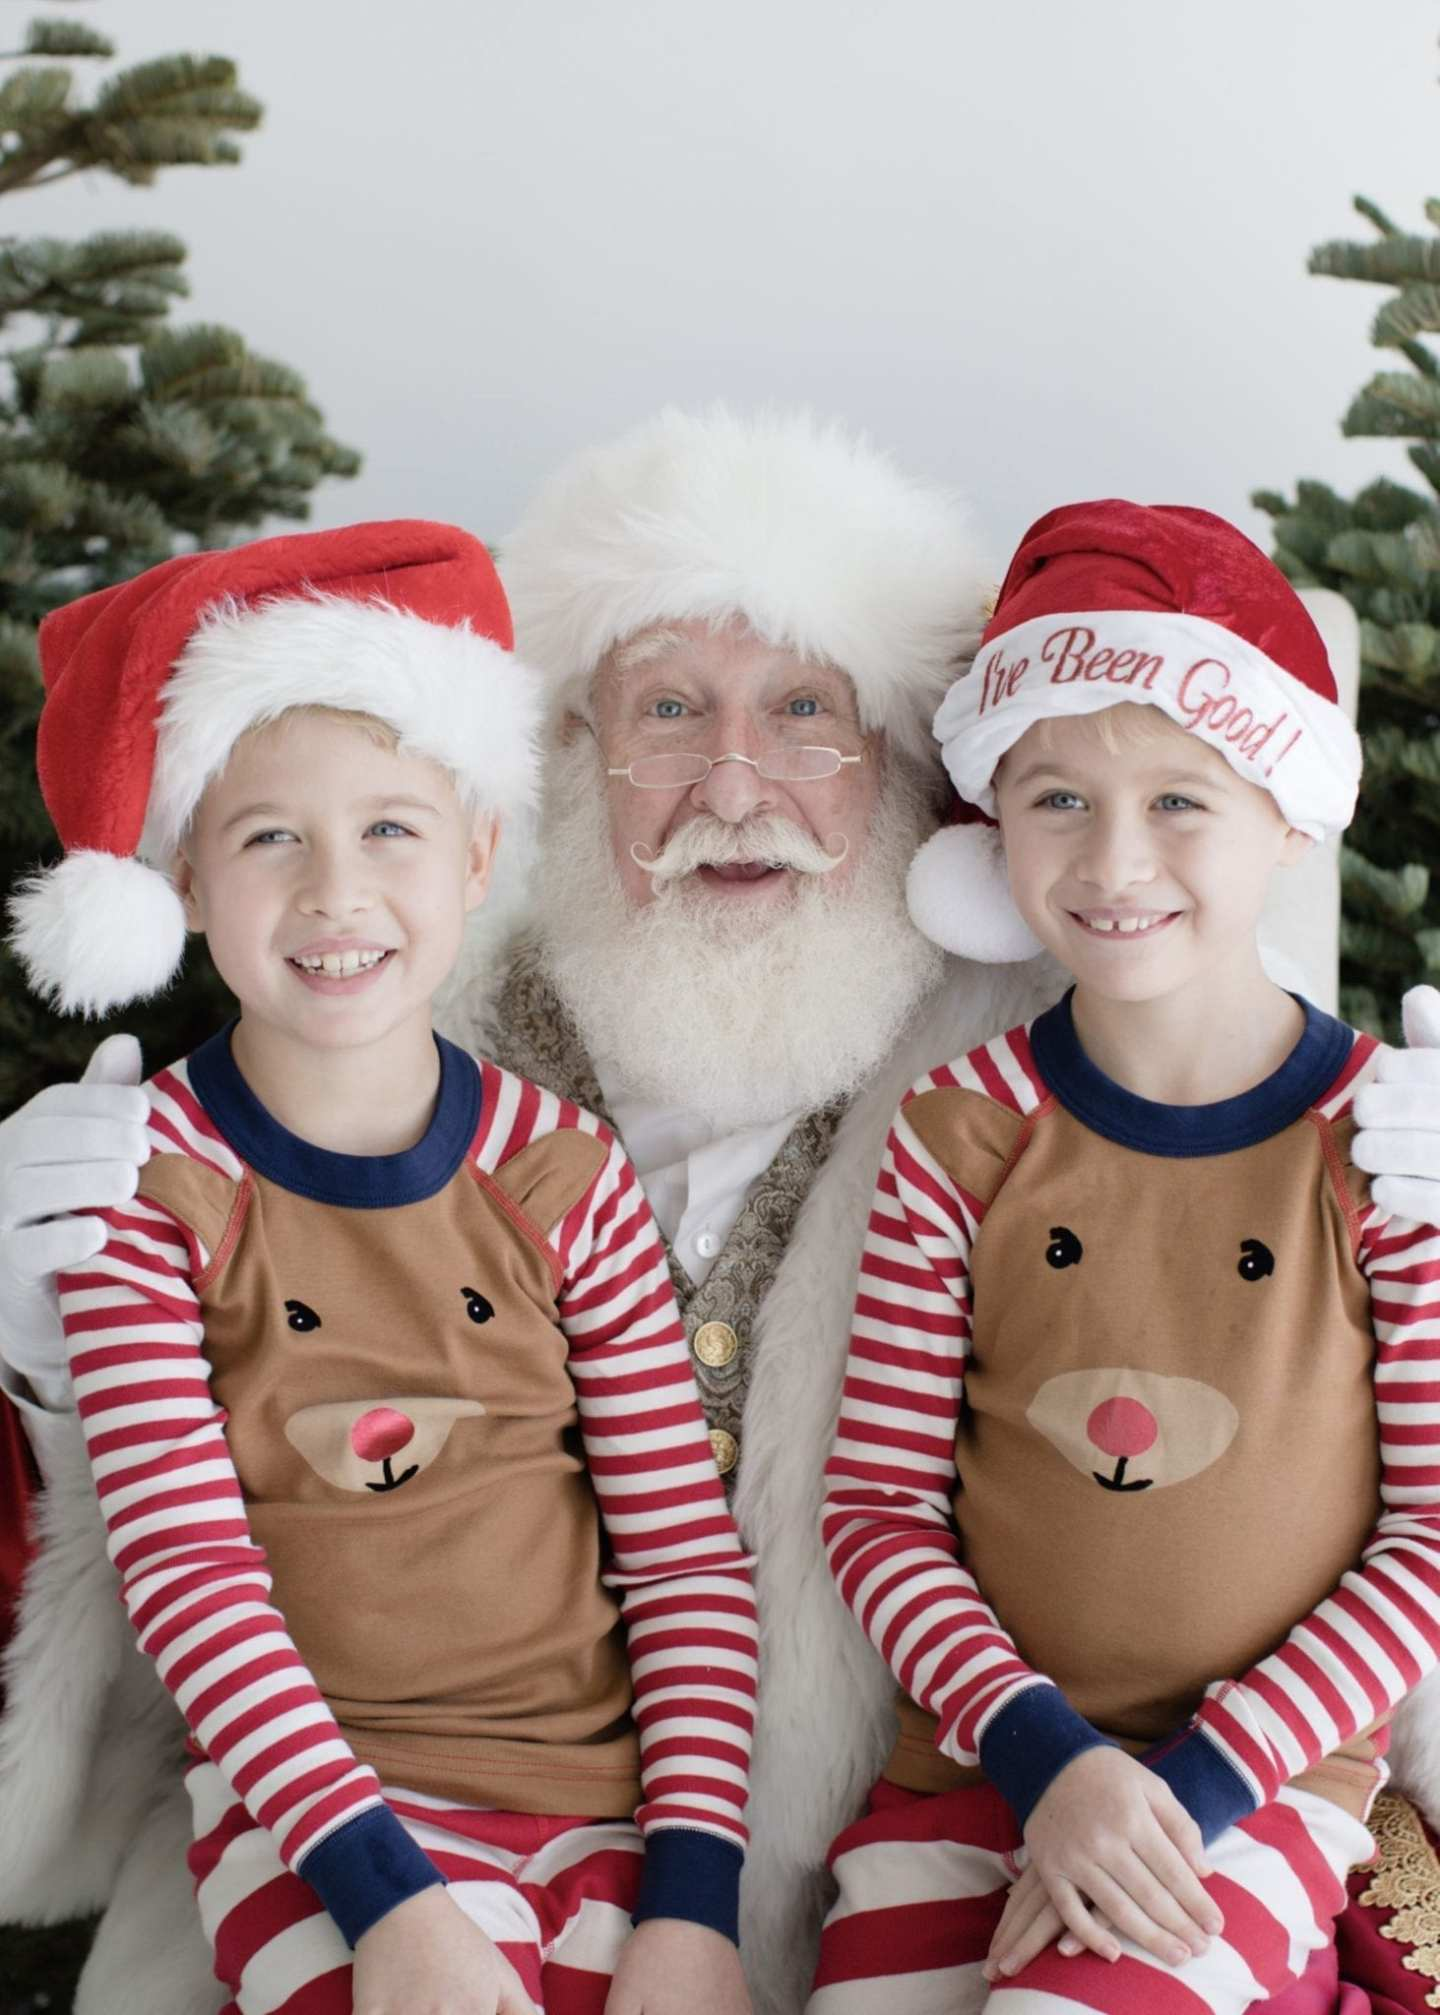 Identical twin boys in Hanna Andersson Christmas Pajamas